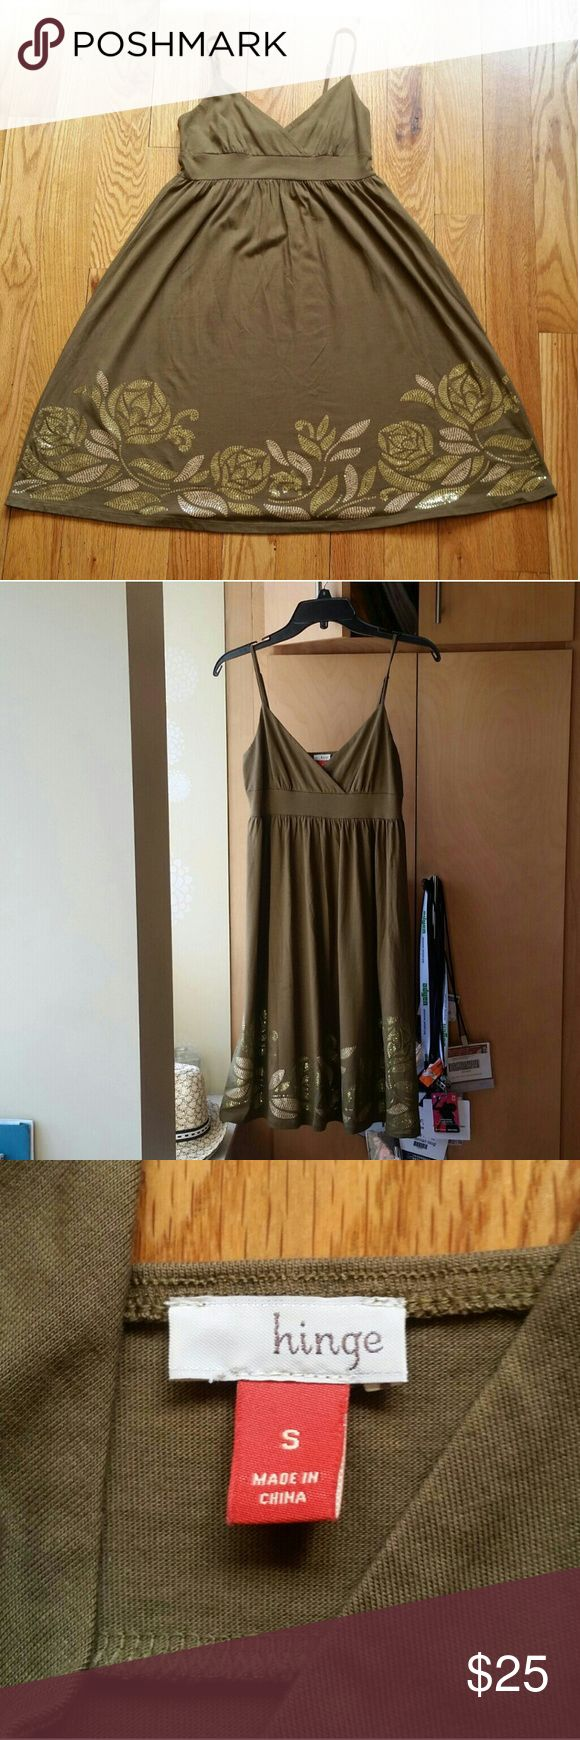 Hinge slipdress with sequined hem, size S *NWOT Olive empire waist slip dress from hinge.  Cotton/modal blend, adjustable straps,  sequined hem. Light, easy dress for spring and summer parties, concerts and date nights. Looks new and unworn, no pilling or wear. Possible stain on skirt, disappears at a distance, but still took a pic (4).   Measures 13.5 inches across the waist, 36.5 from shoulder to help with current strap adjustment. hinge Dresses